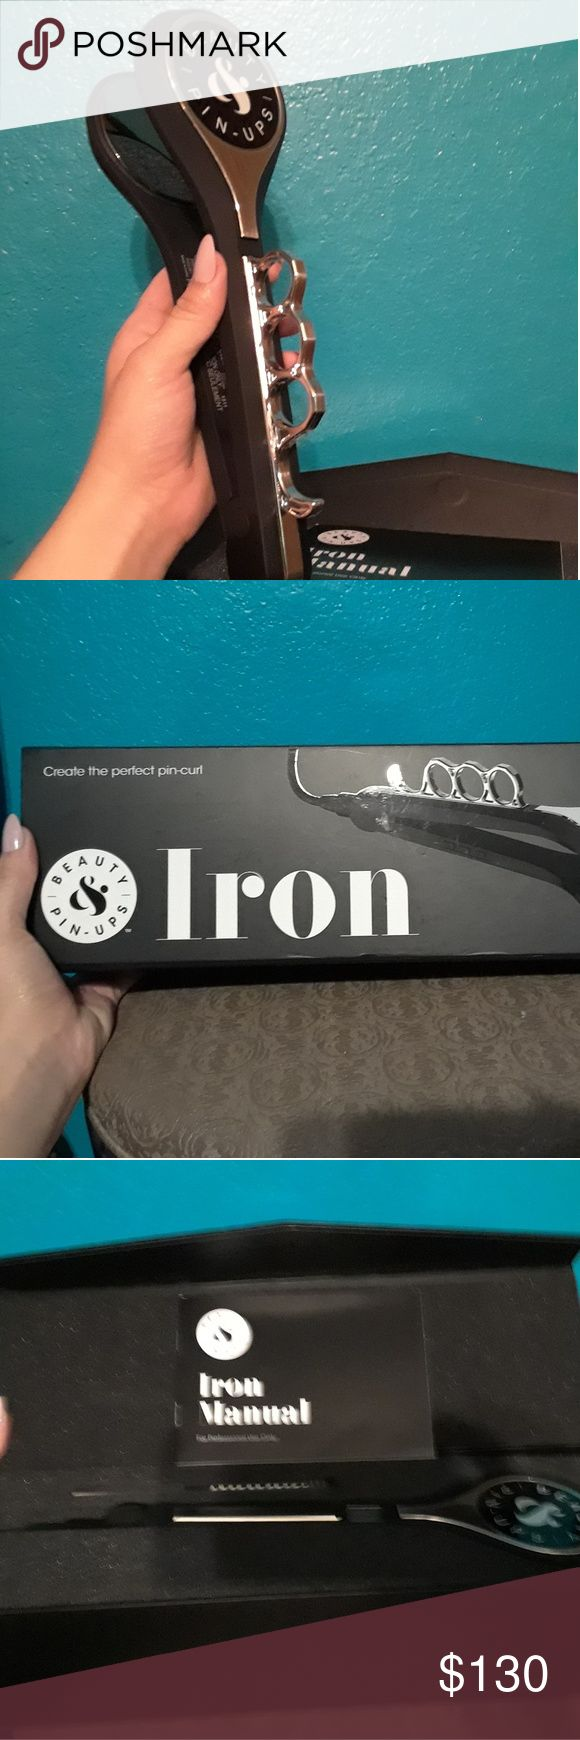 Brand New Pin Up Curl Iron Pin curl iron, new in box, cool brass-knuckle handle Beauty Pin Ups Other